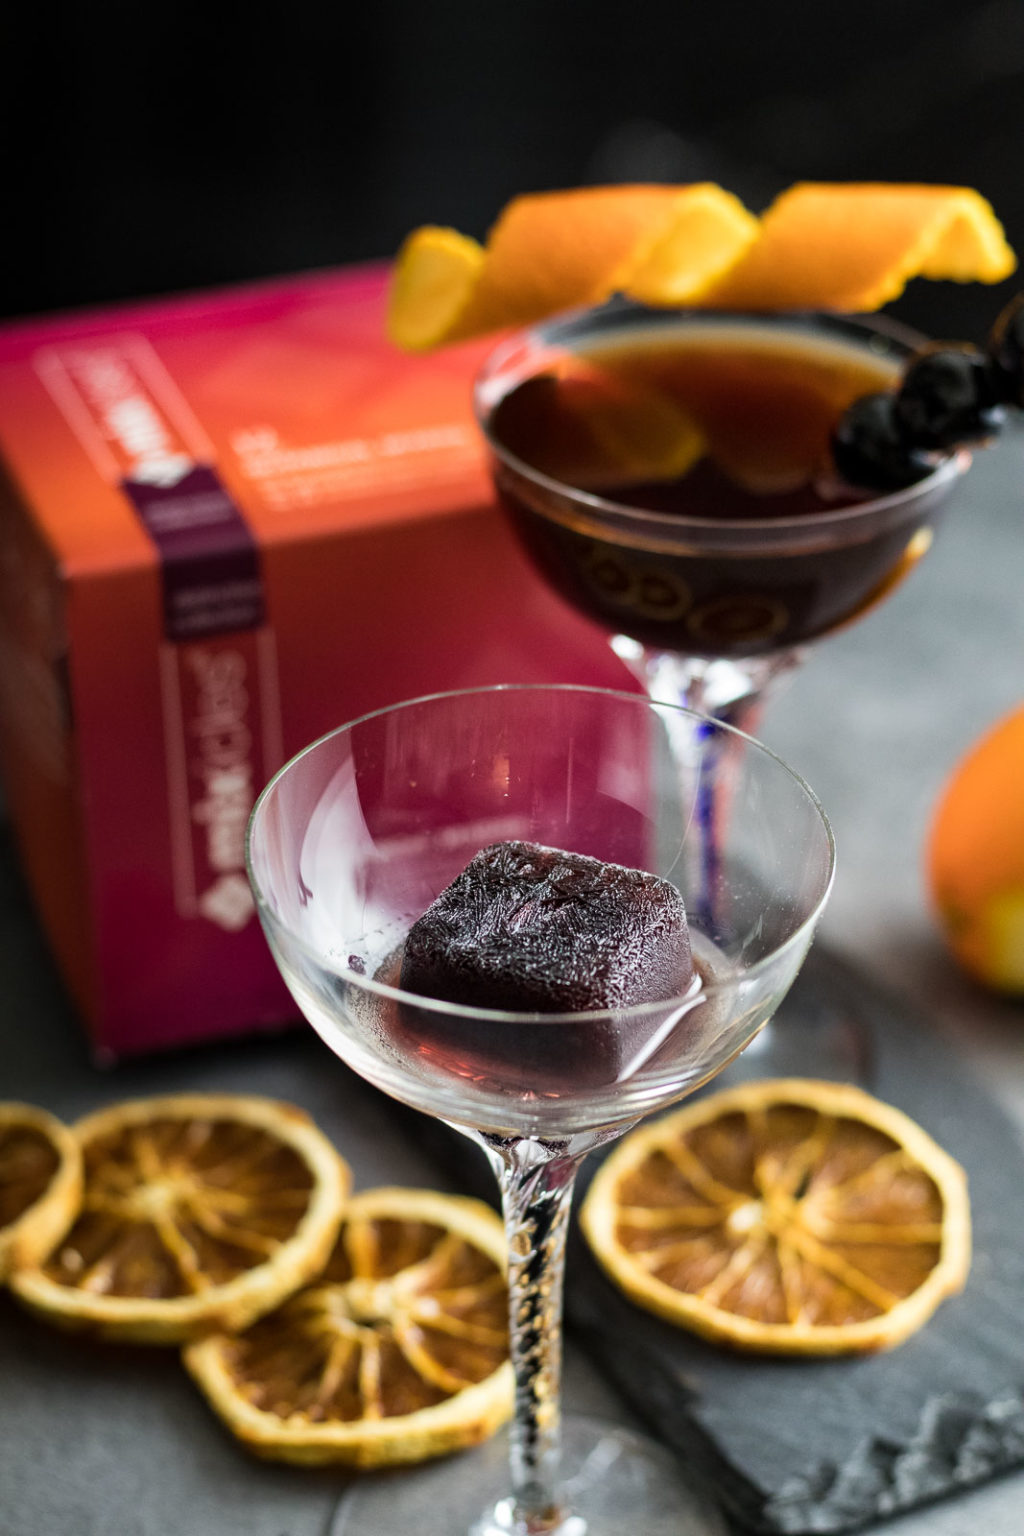 Two Smoked Cherry Manhattans with Mixcles package box nearby, garnished with orange peel